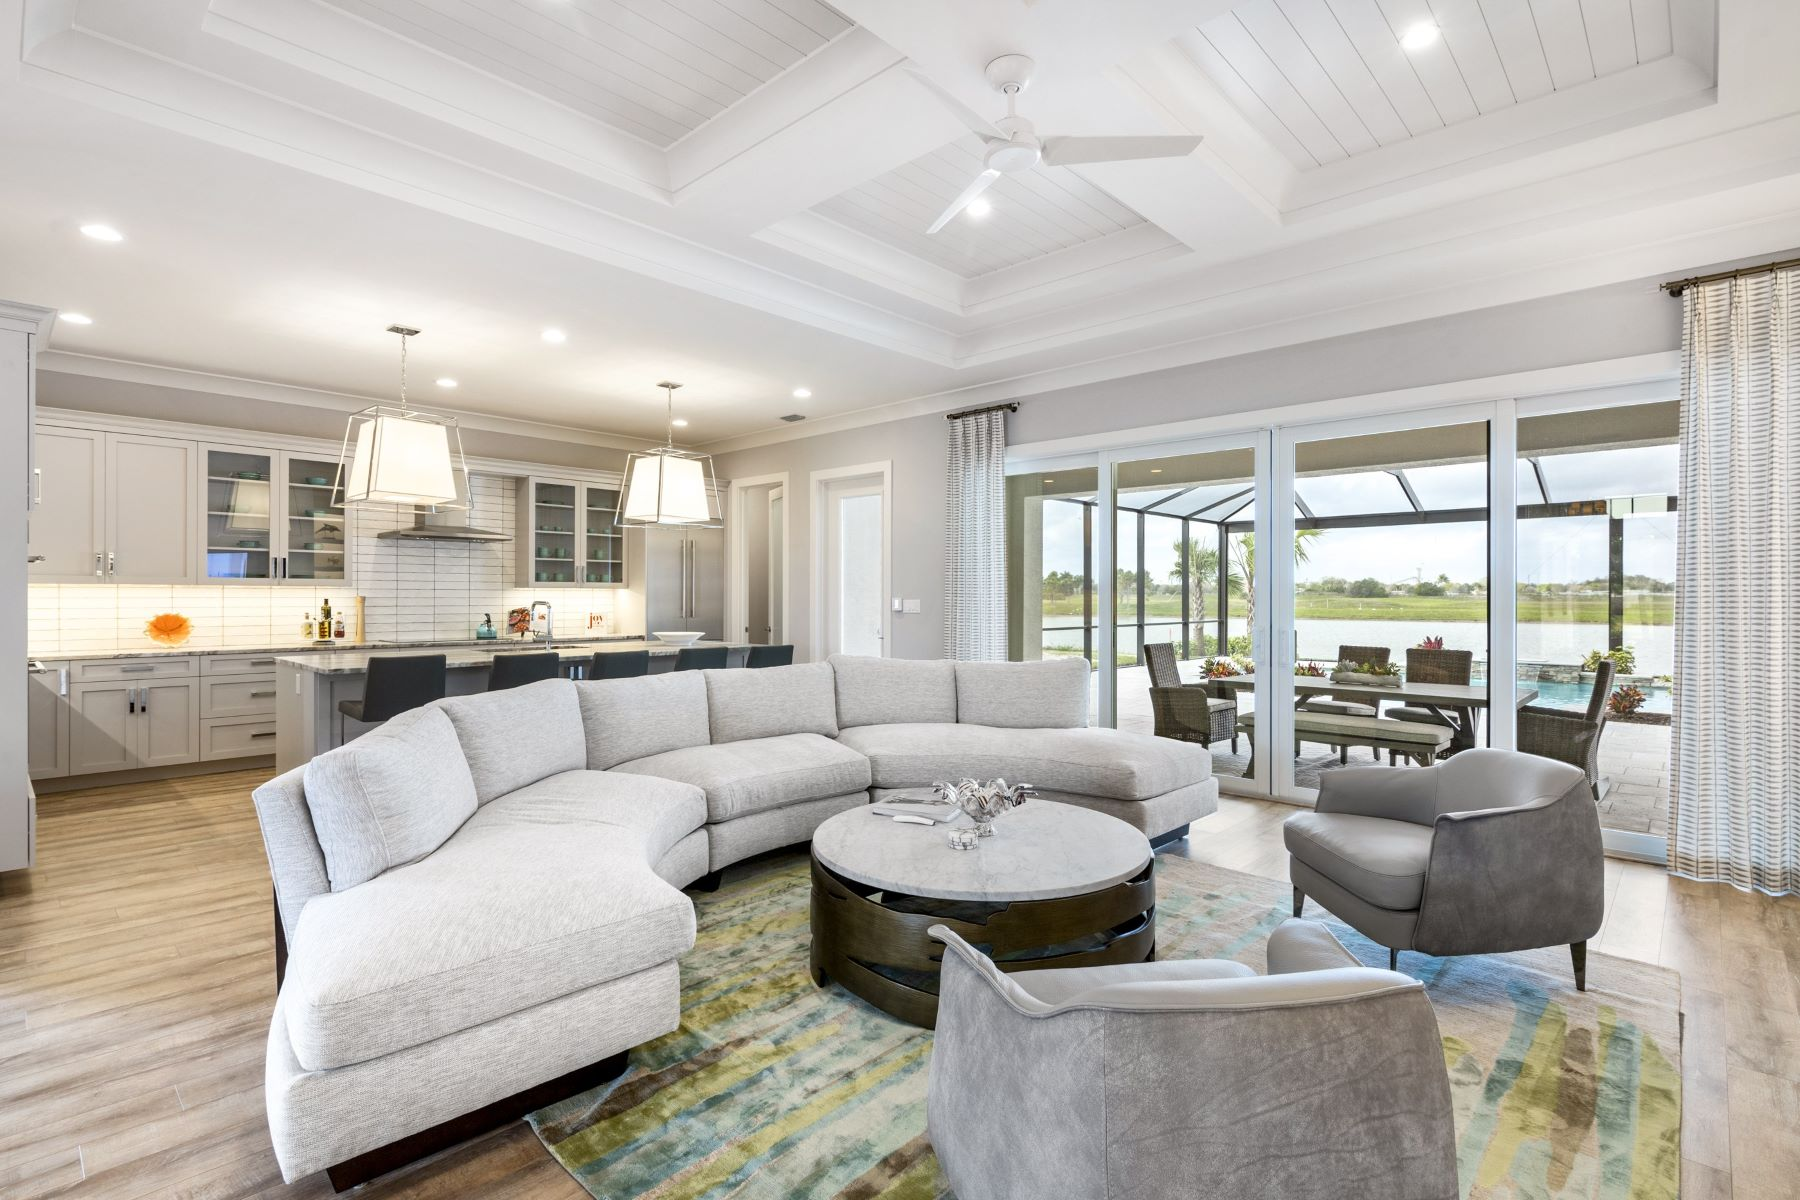 Additional photo for property listing at 2344 Grand Harbor Reserve Square Vero Beach, Florida 32967 United States